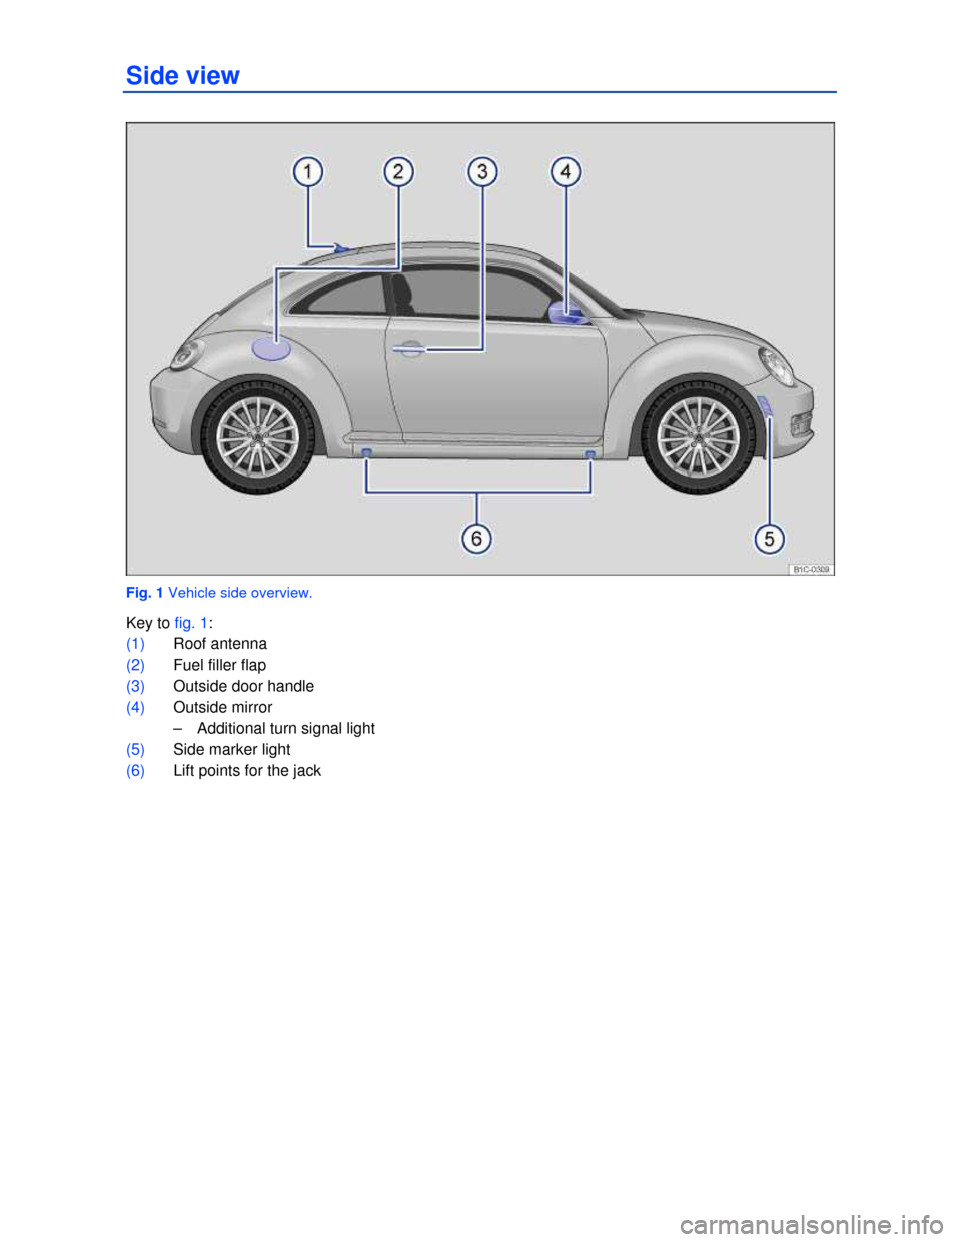 VOLKSWAGEN BEETLE 2013 3.G Owners Manual   Side view    Fig. 1 Vehicle side overview.  Key to fig. 1:  (1) Roof antenna   (2) Fuel filler flap   (3) Outside door handle   (4) Outside mirror   –  Additional turn signal light   (5) Side mark